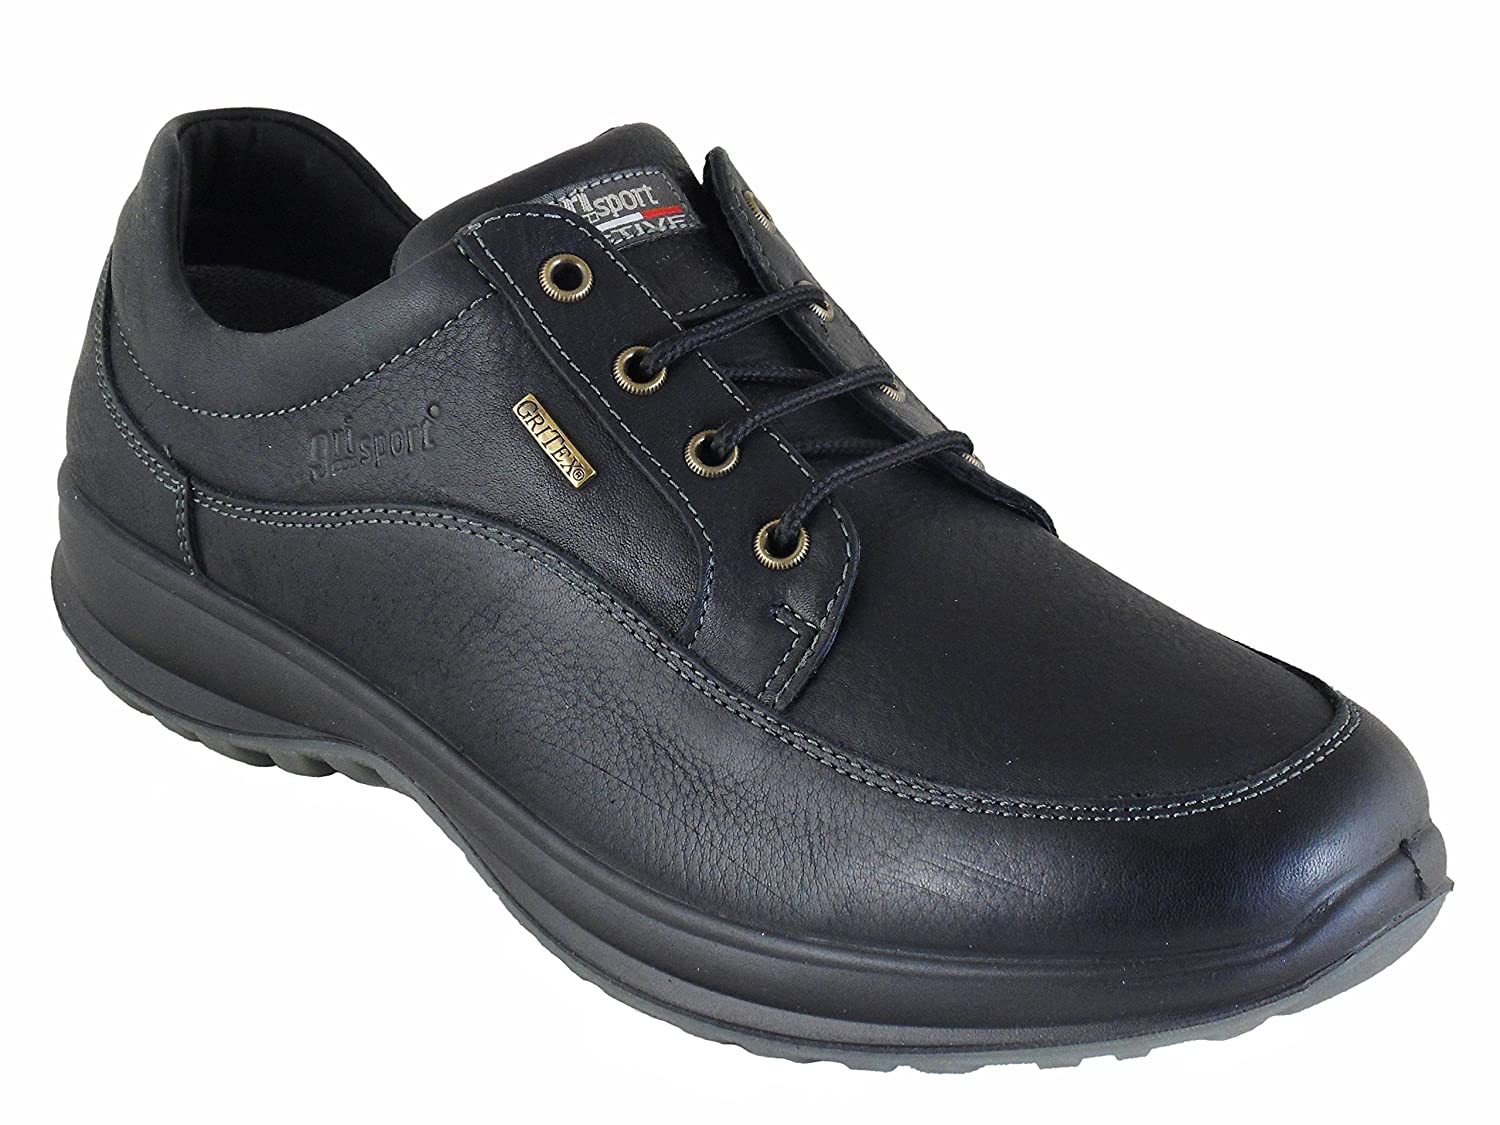 753cd045069 Grisport Livingston Men's Quality Leather Shoes Black